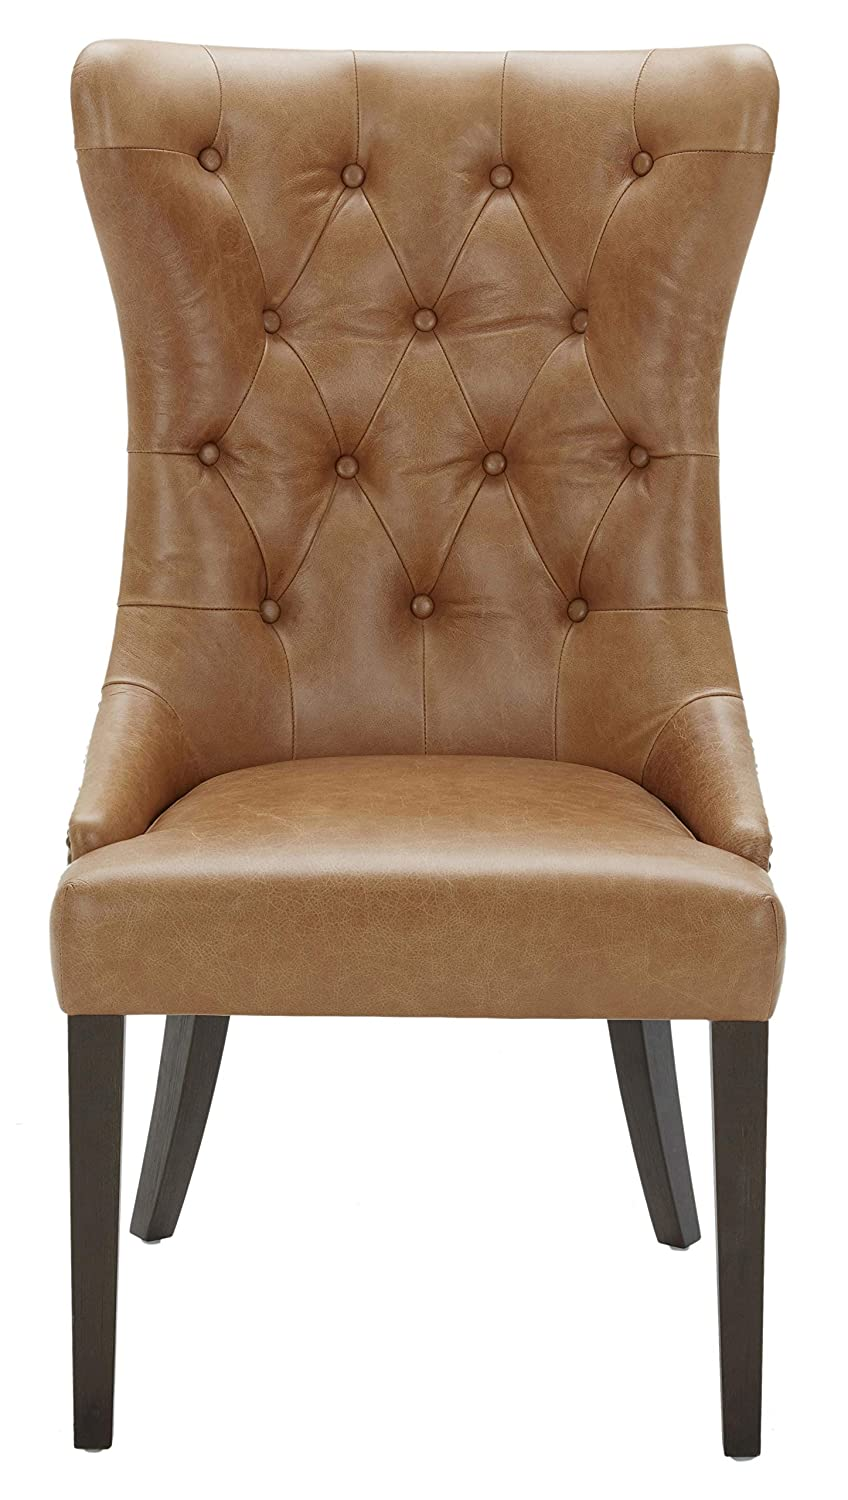 Stone Beam Leather Dining Chair with Deep Tufting, 42 H, Cognac, Queen –